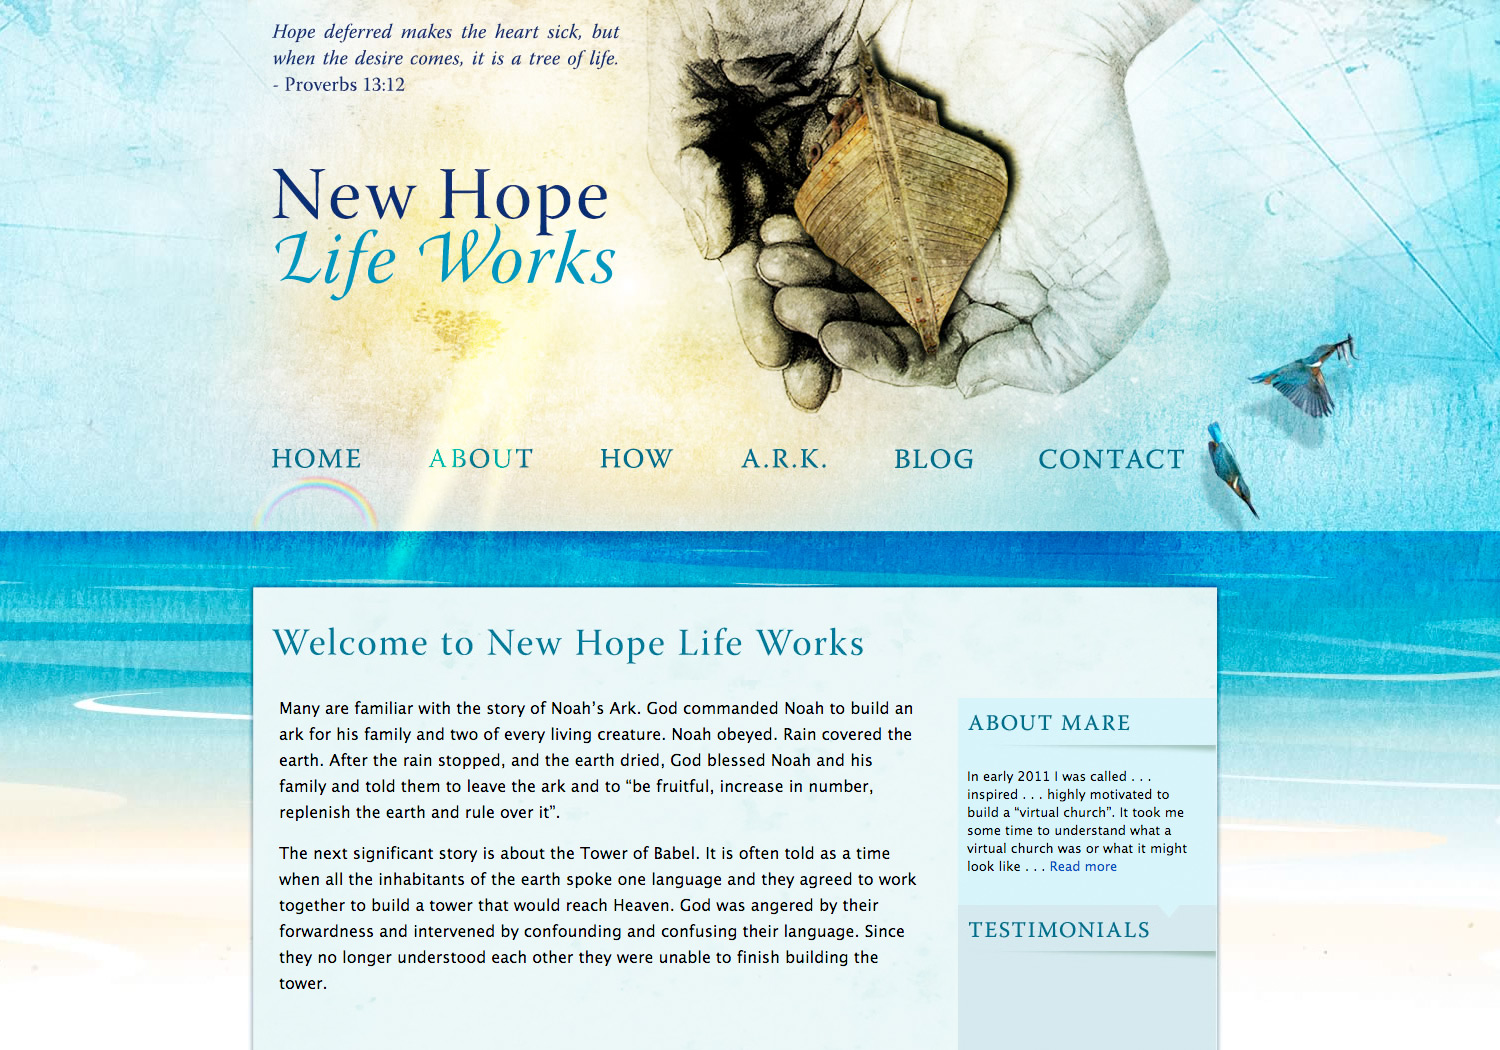 New Hope Life Works